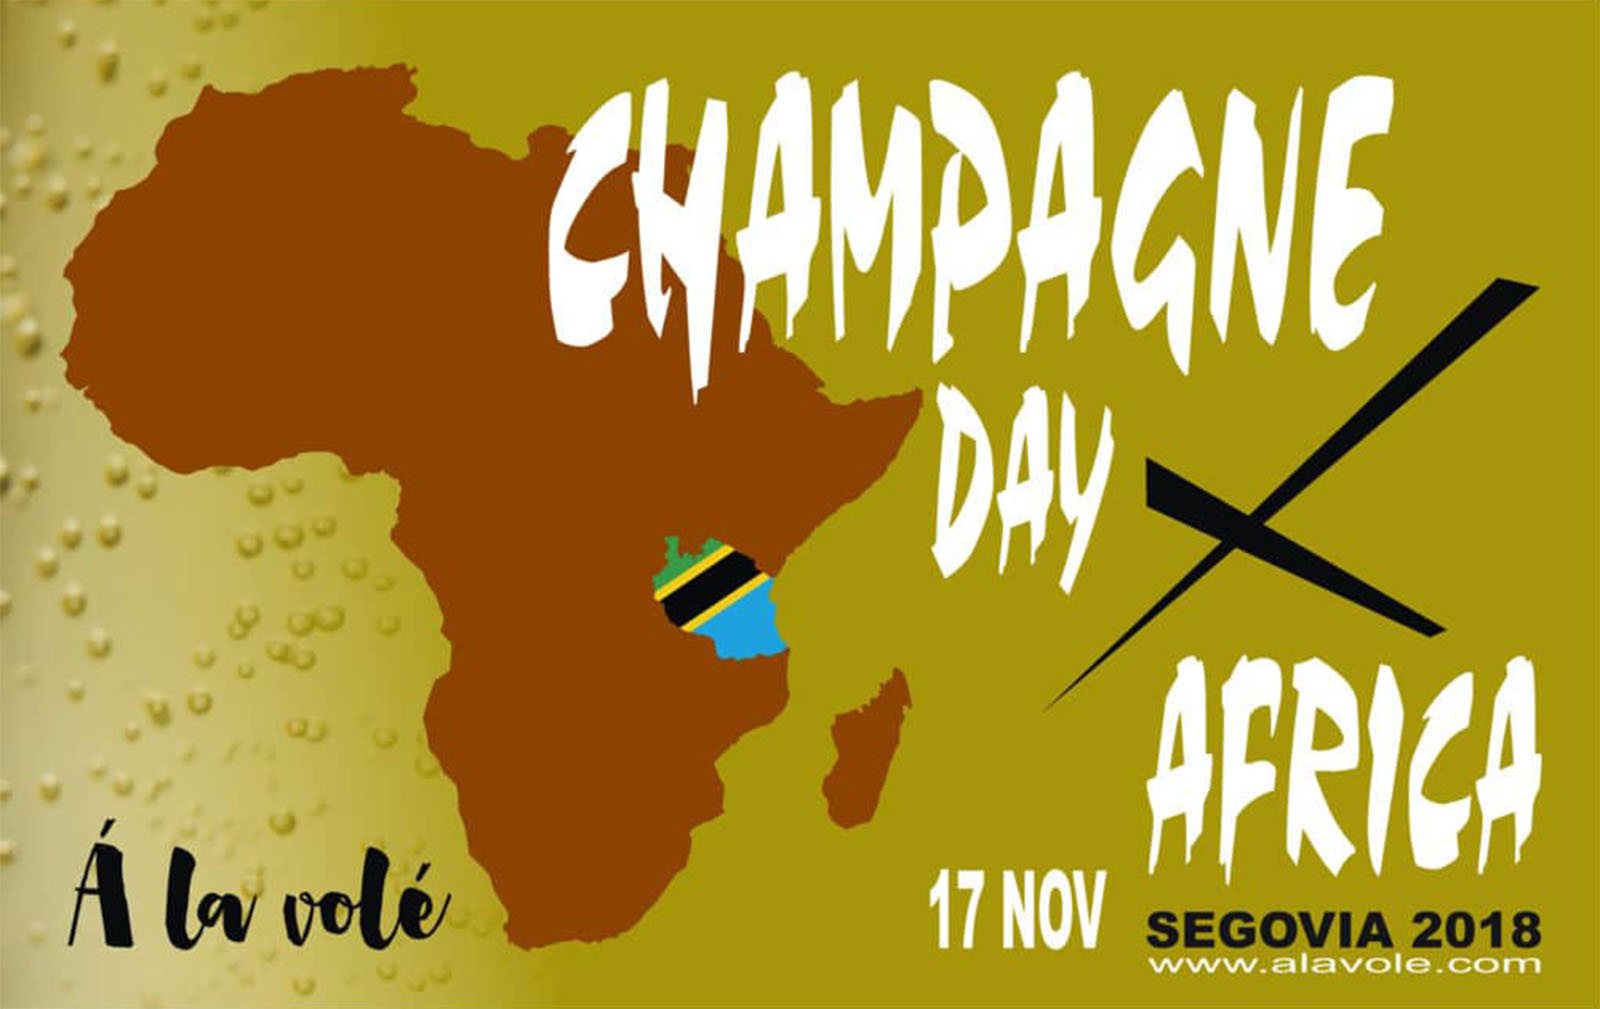 Champagne Weekend for Africa